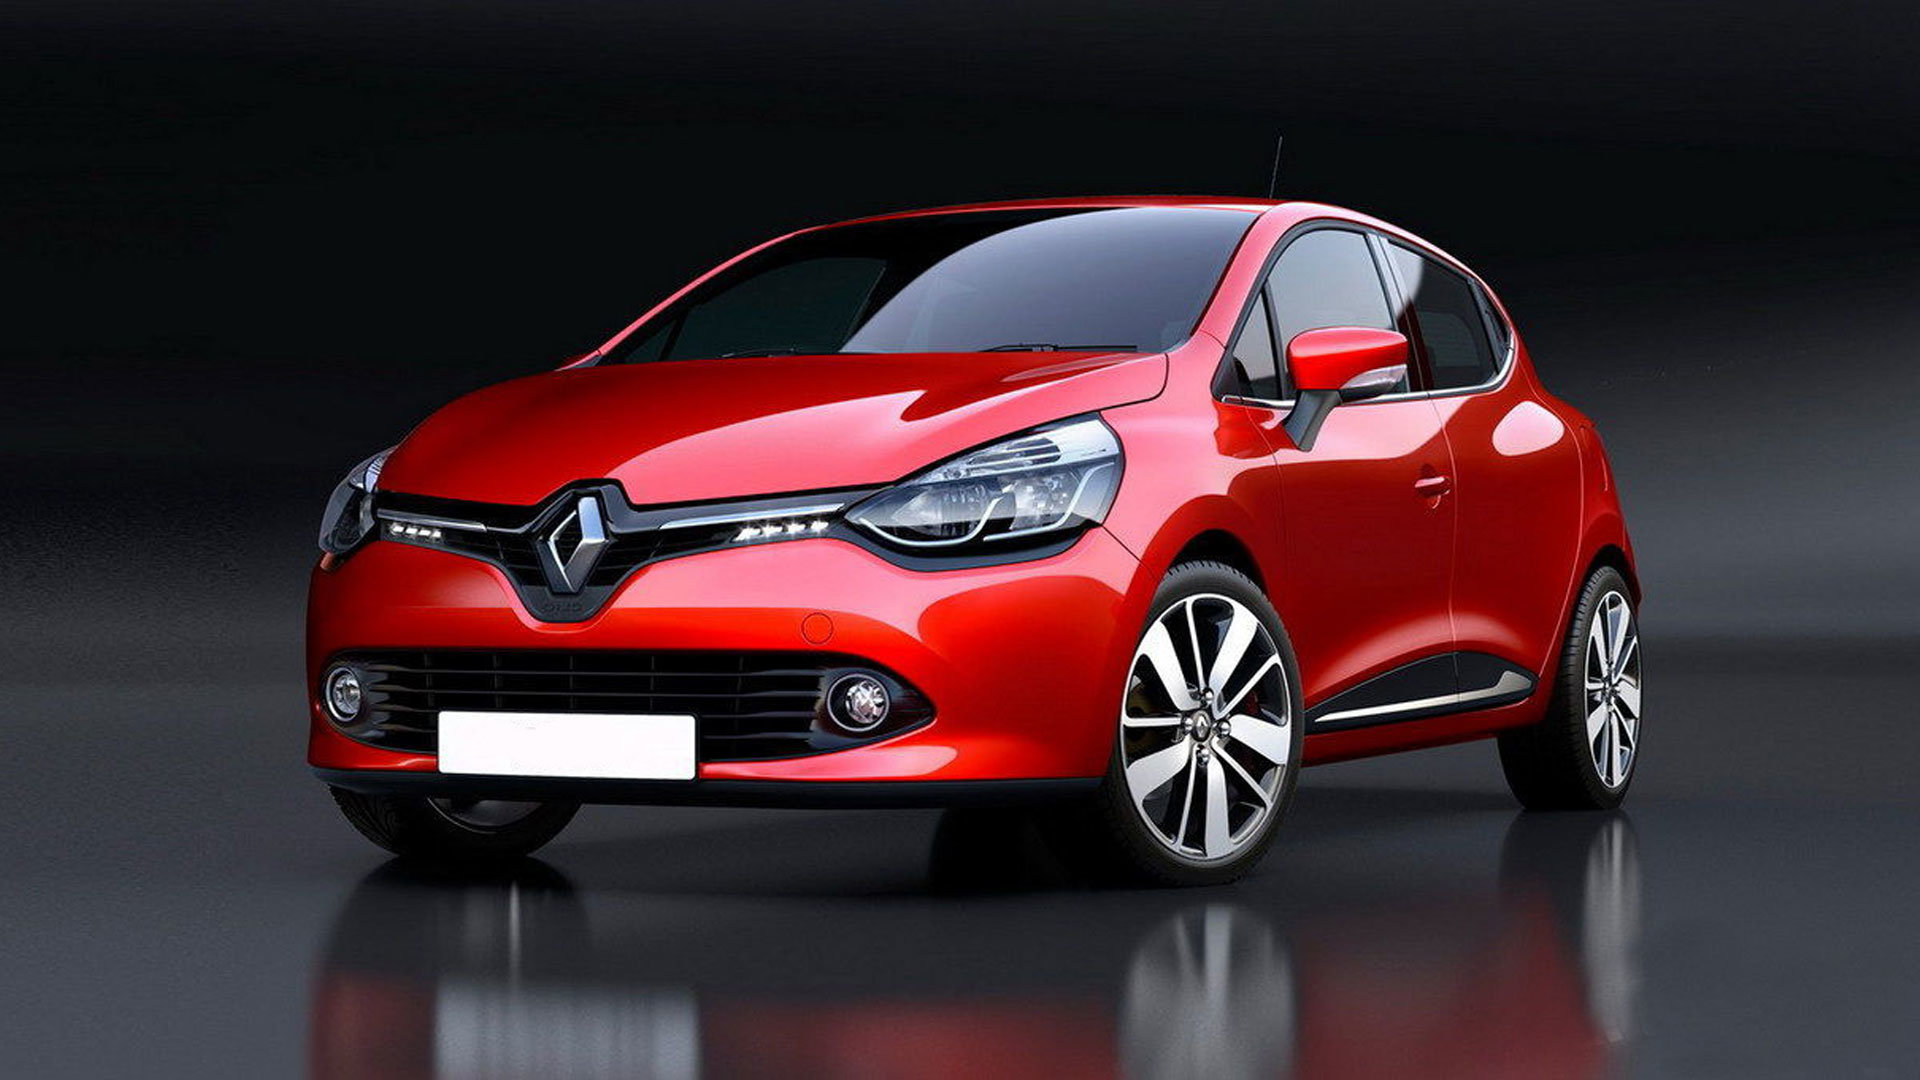 Best Renault Clio wallpaper ID:250160 for High Resolution full hd computer